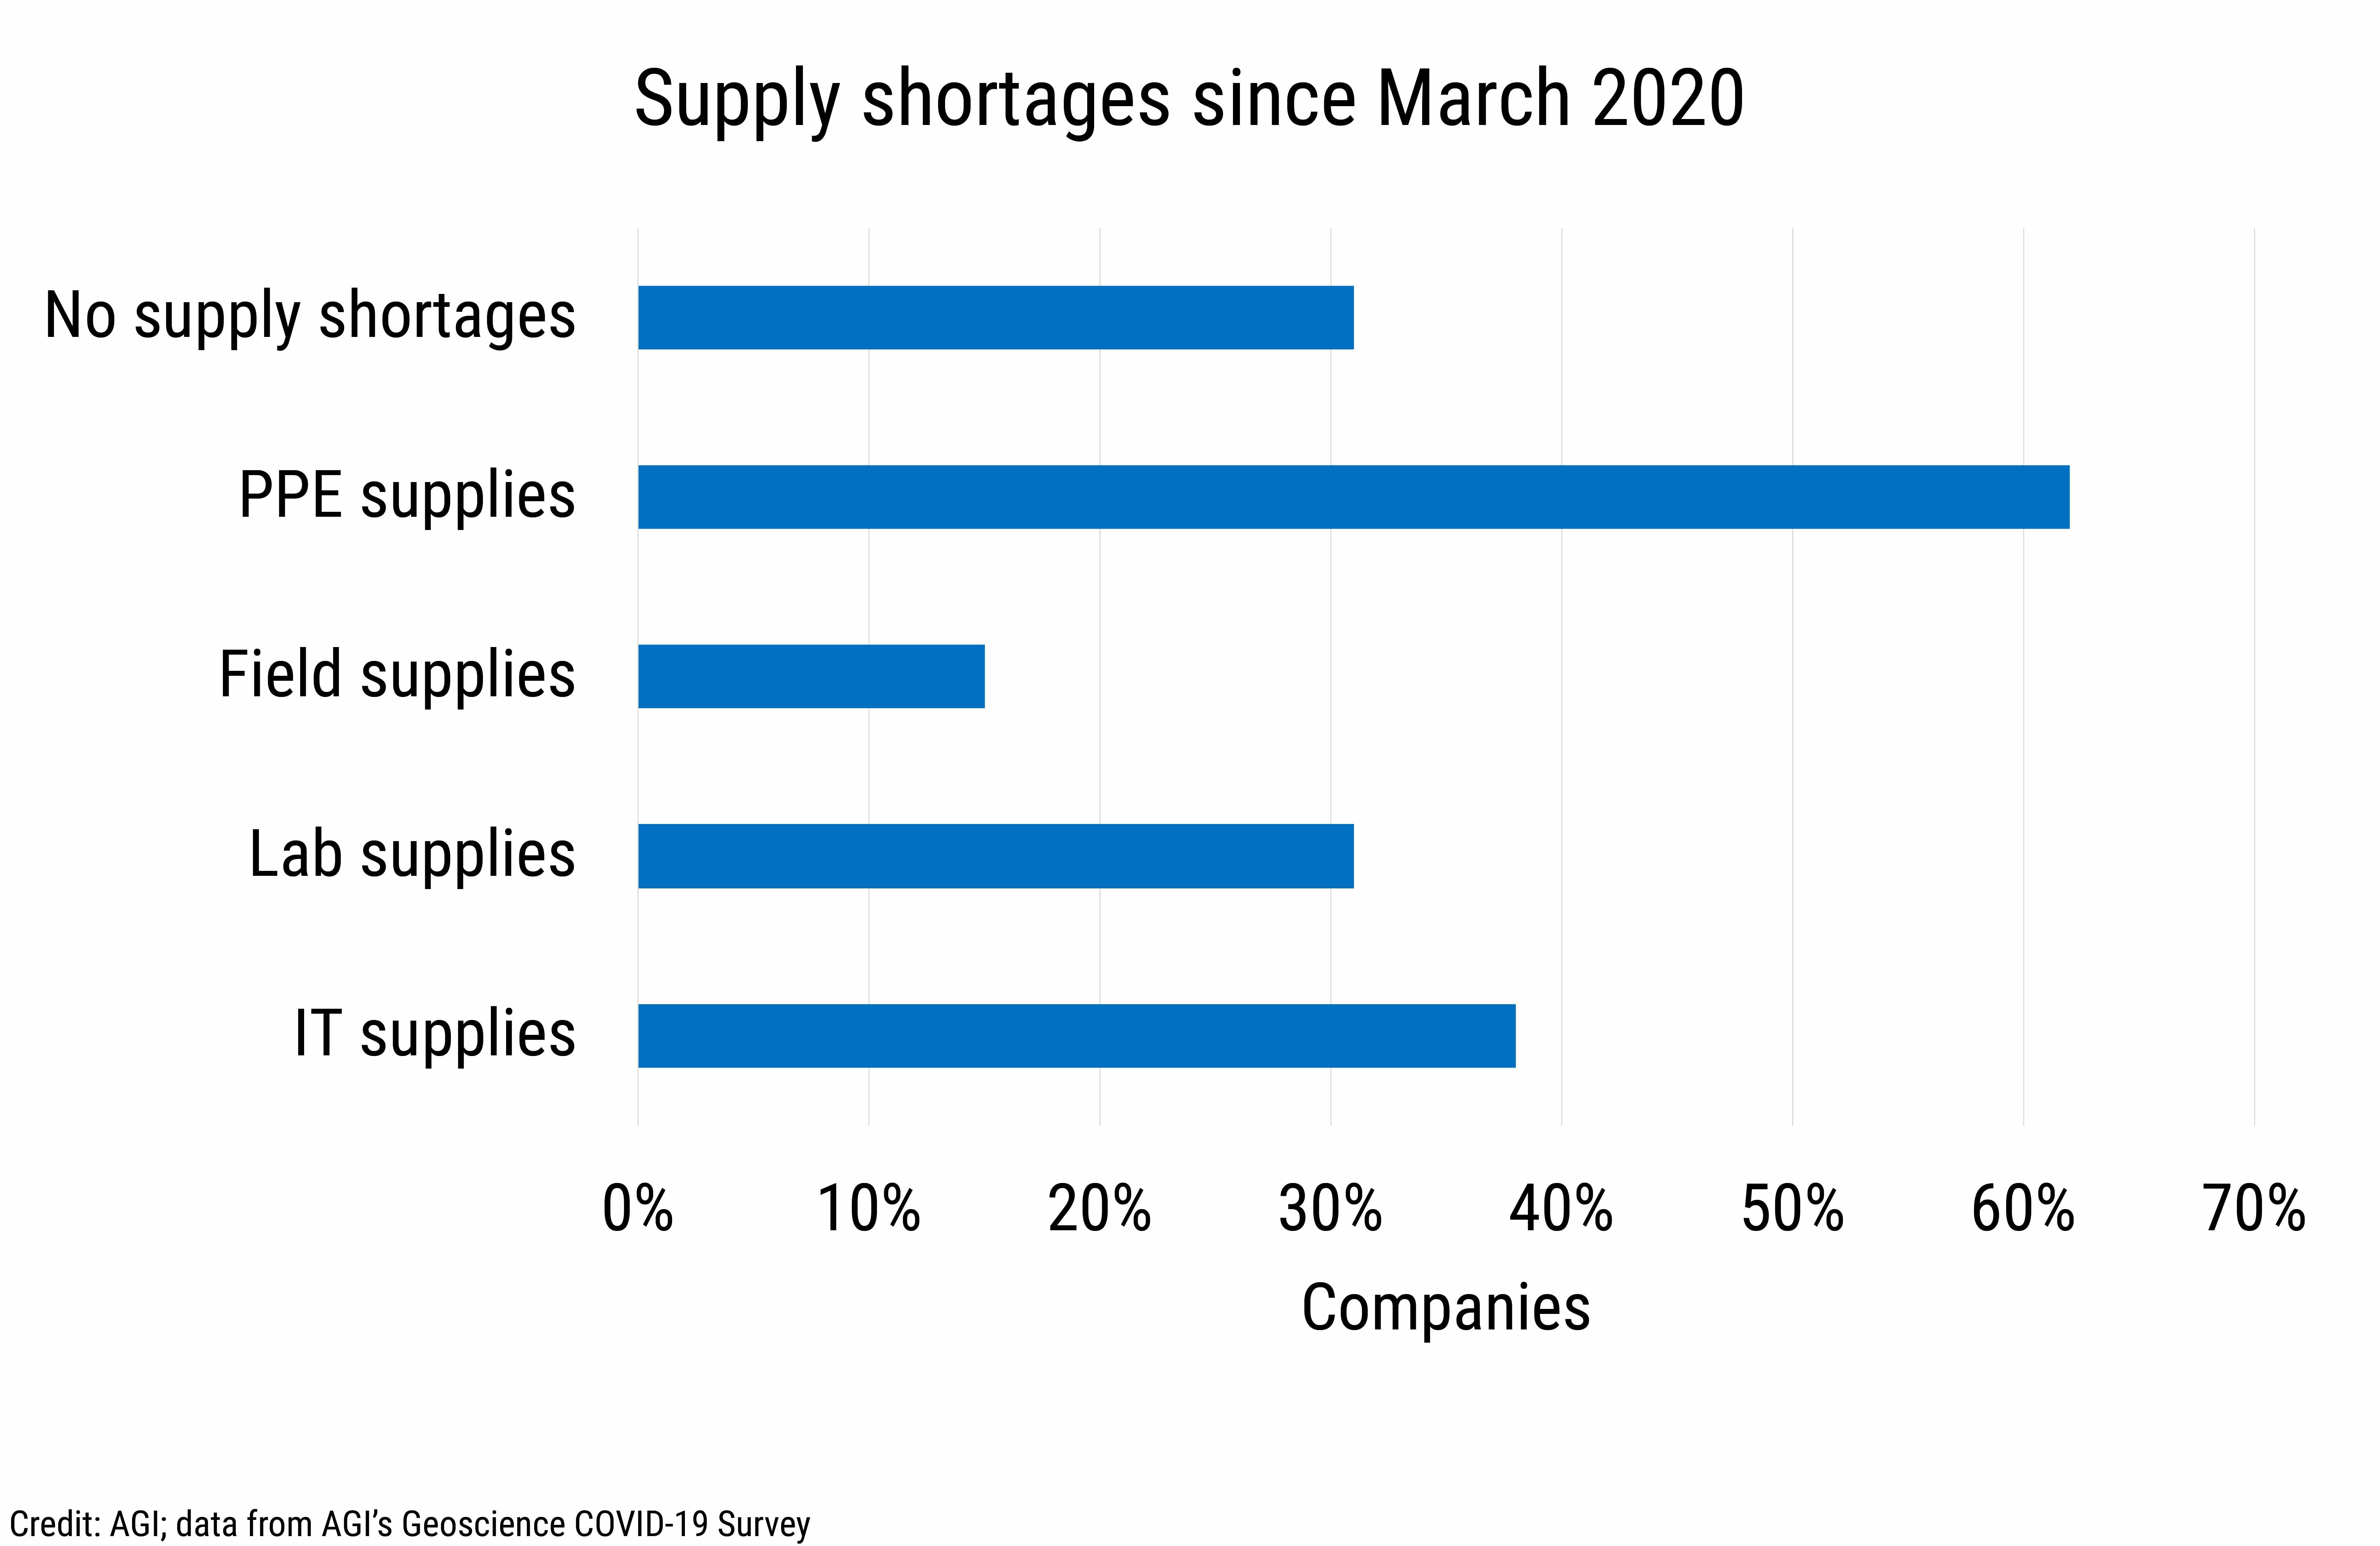 DB_2021-004_chart06: Supply shortages since March 2020 (Credit: AGI; data from AGI's Geoscience COVID-19 Survey)